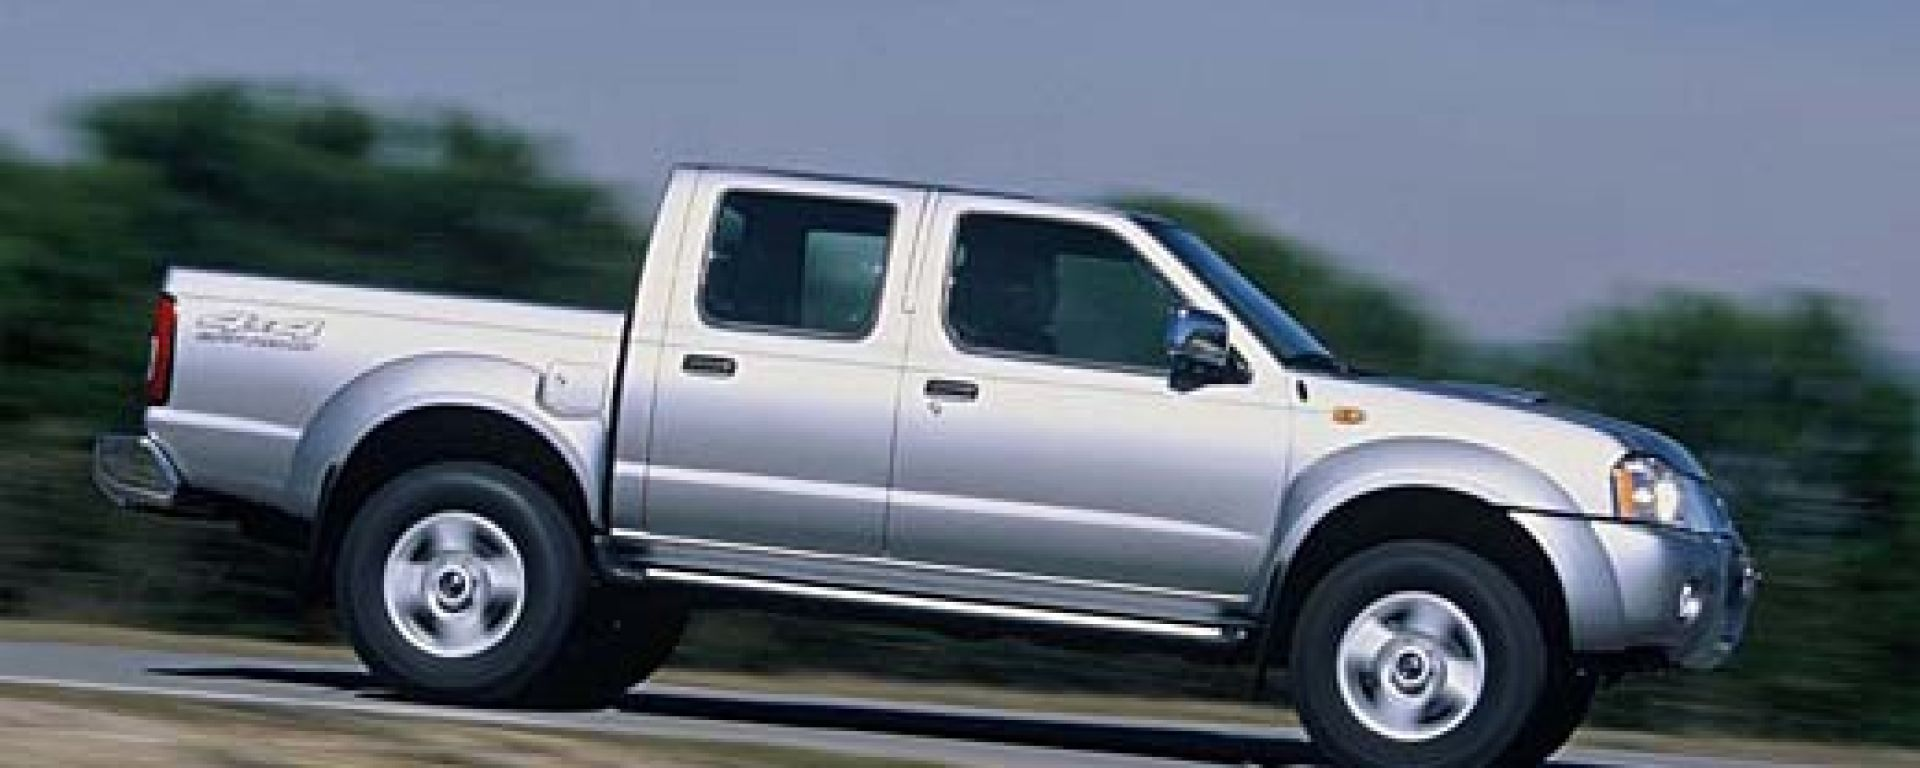 Nissan Pickup Double Cab